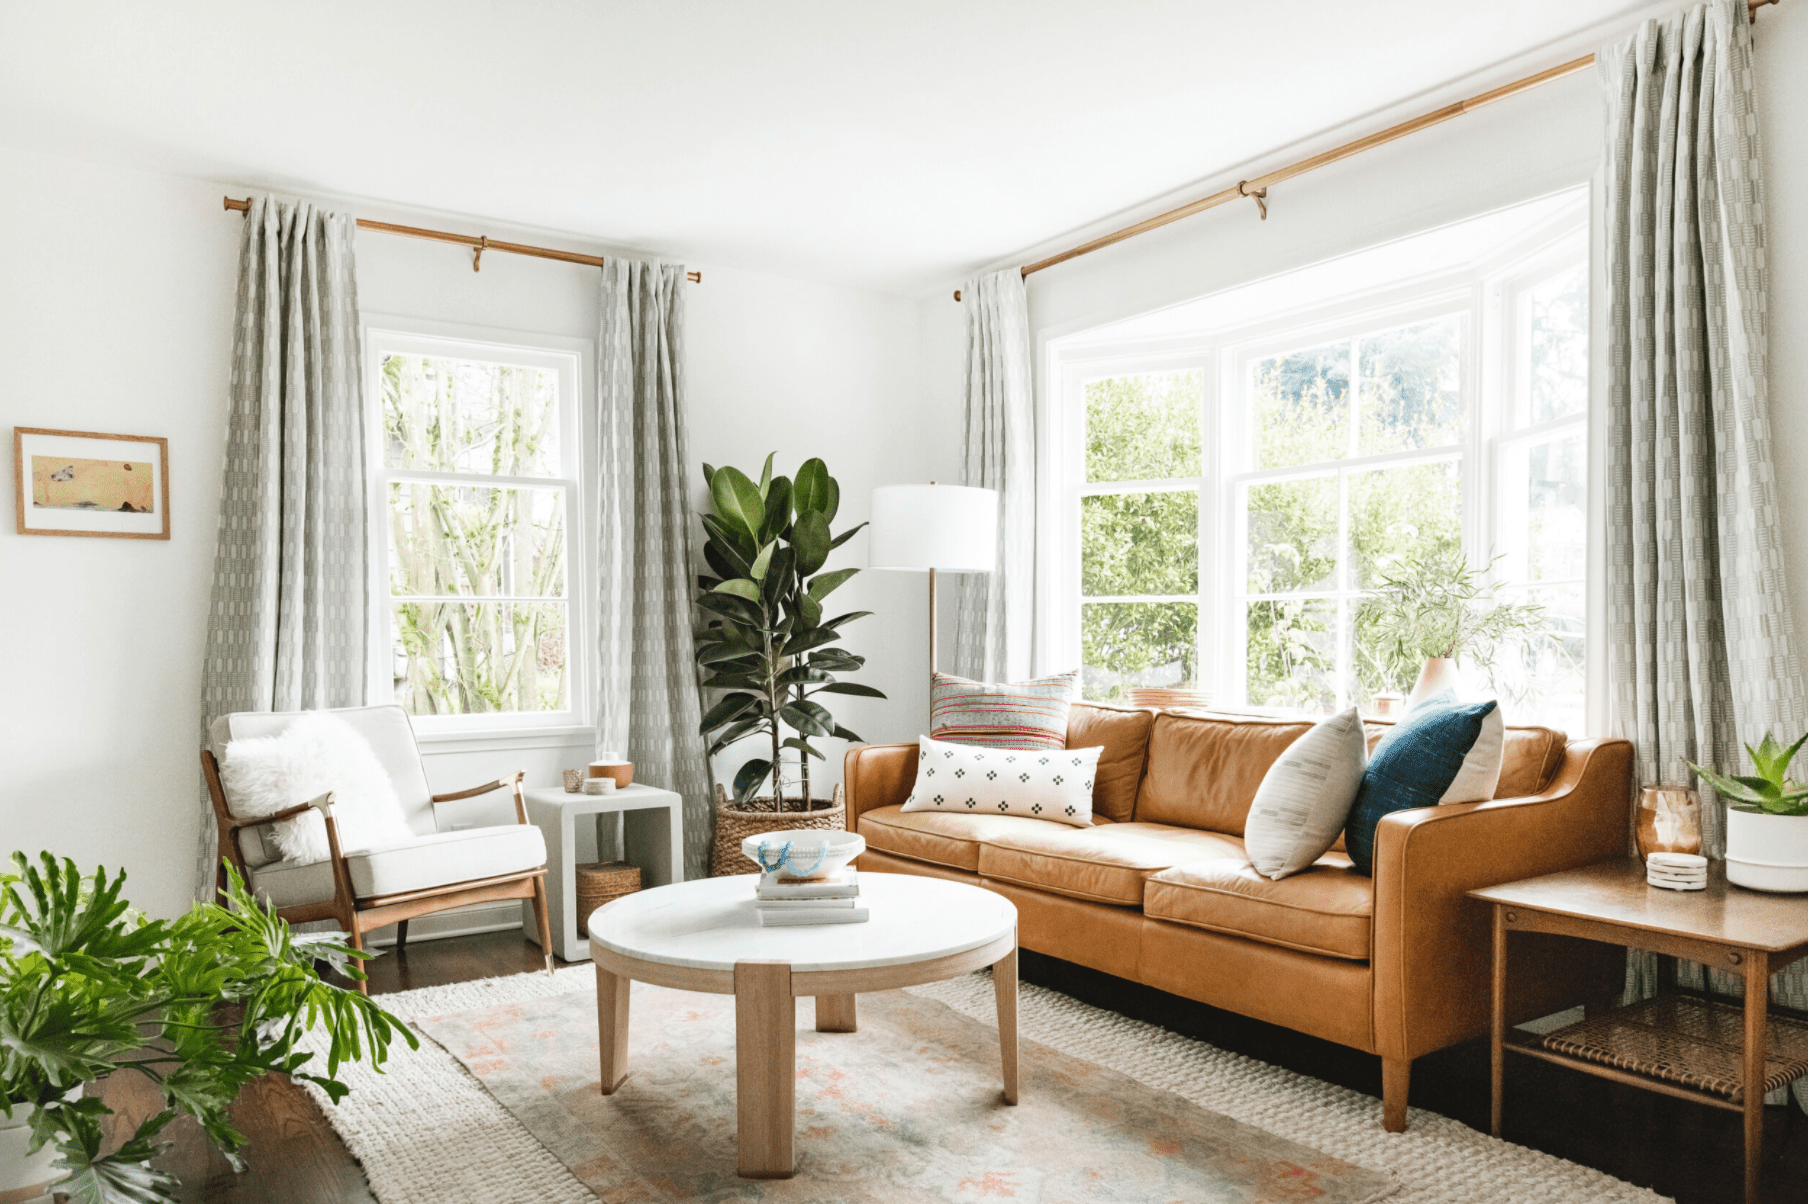 Living room features layered area rugs, leather couch, potted plants